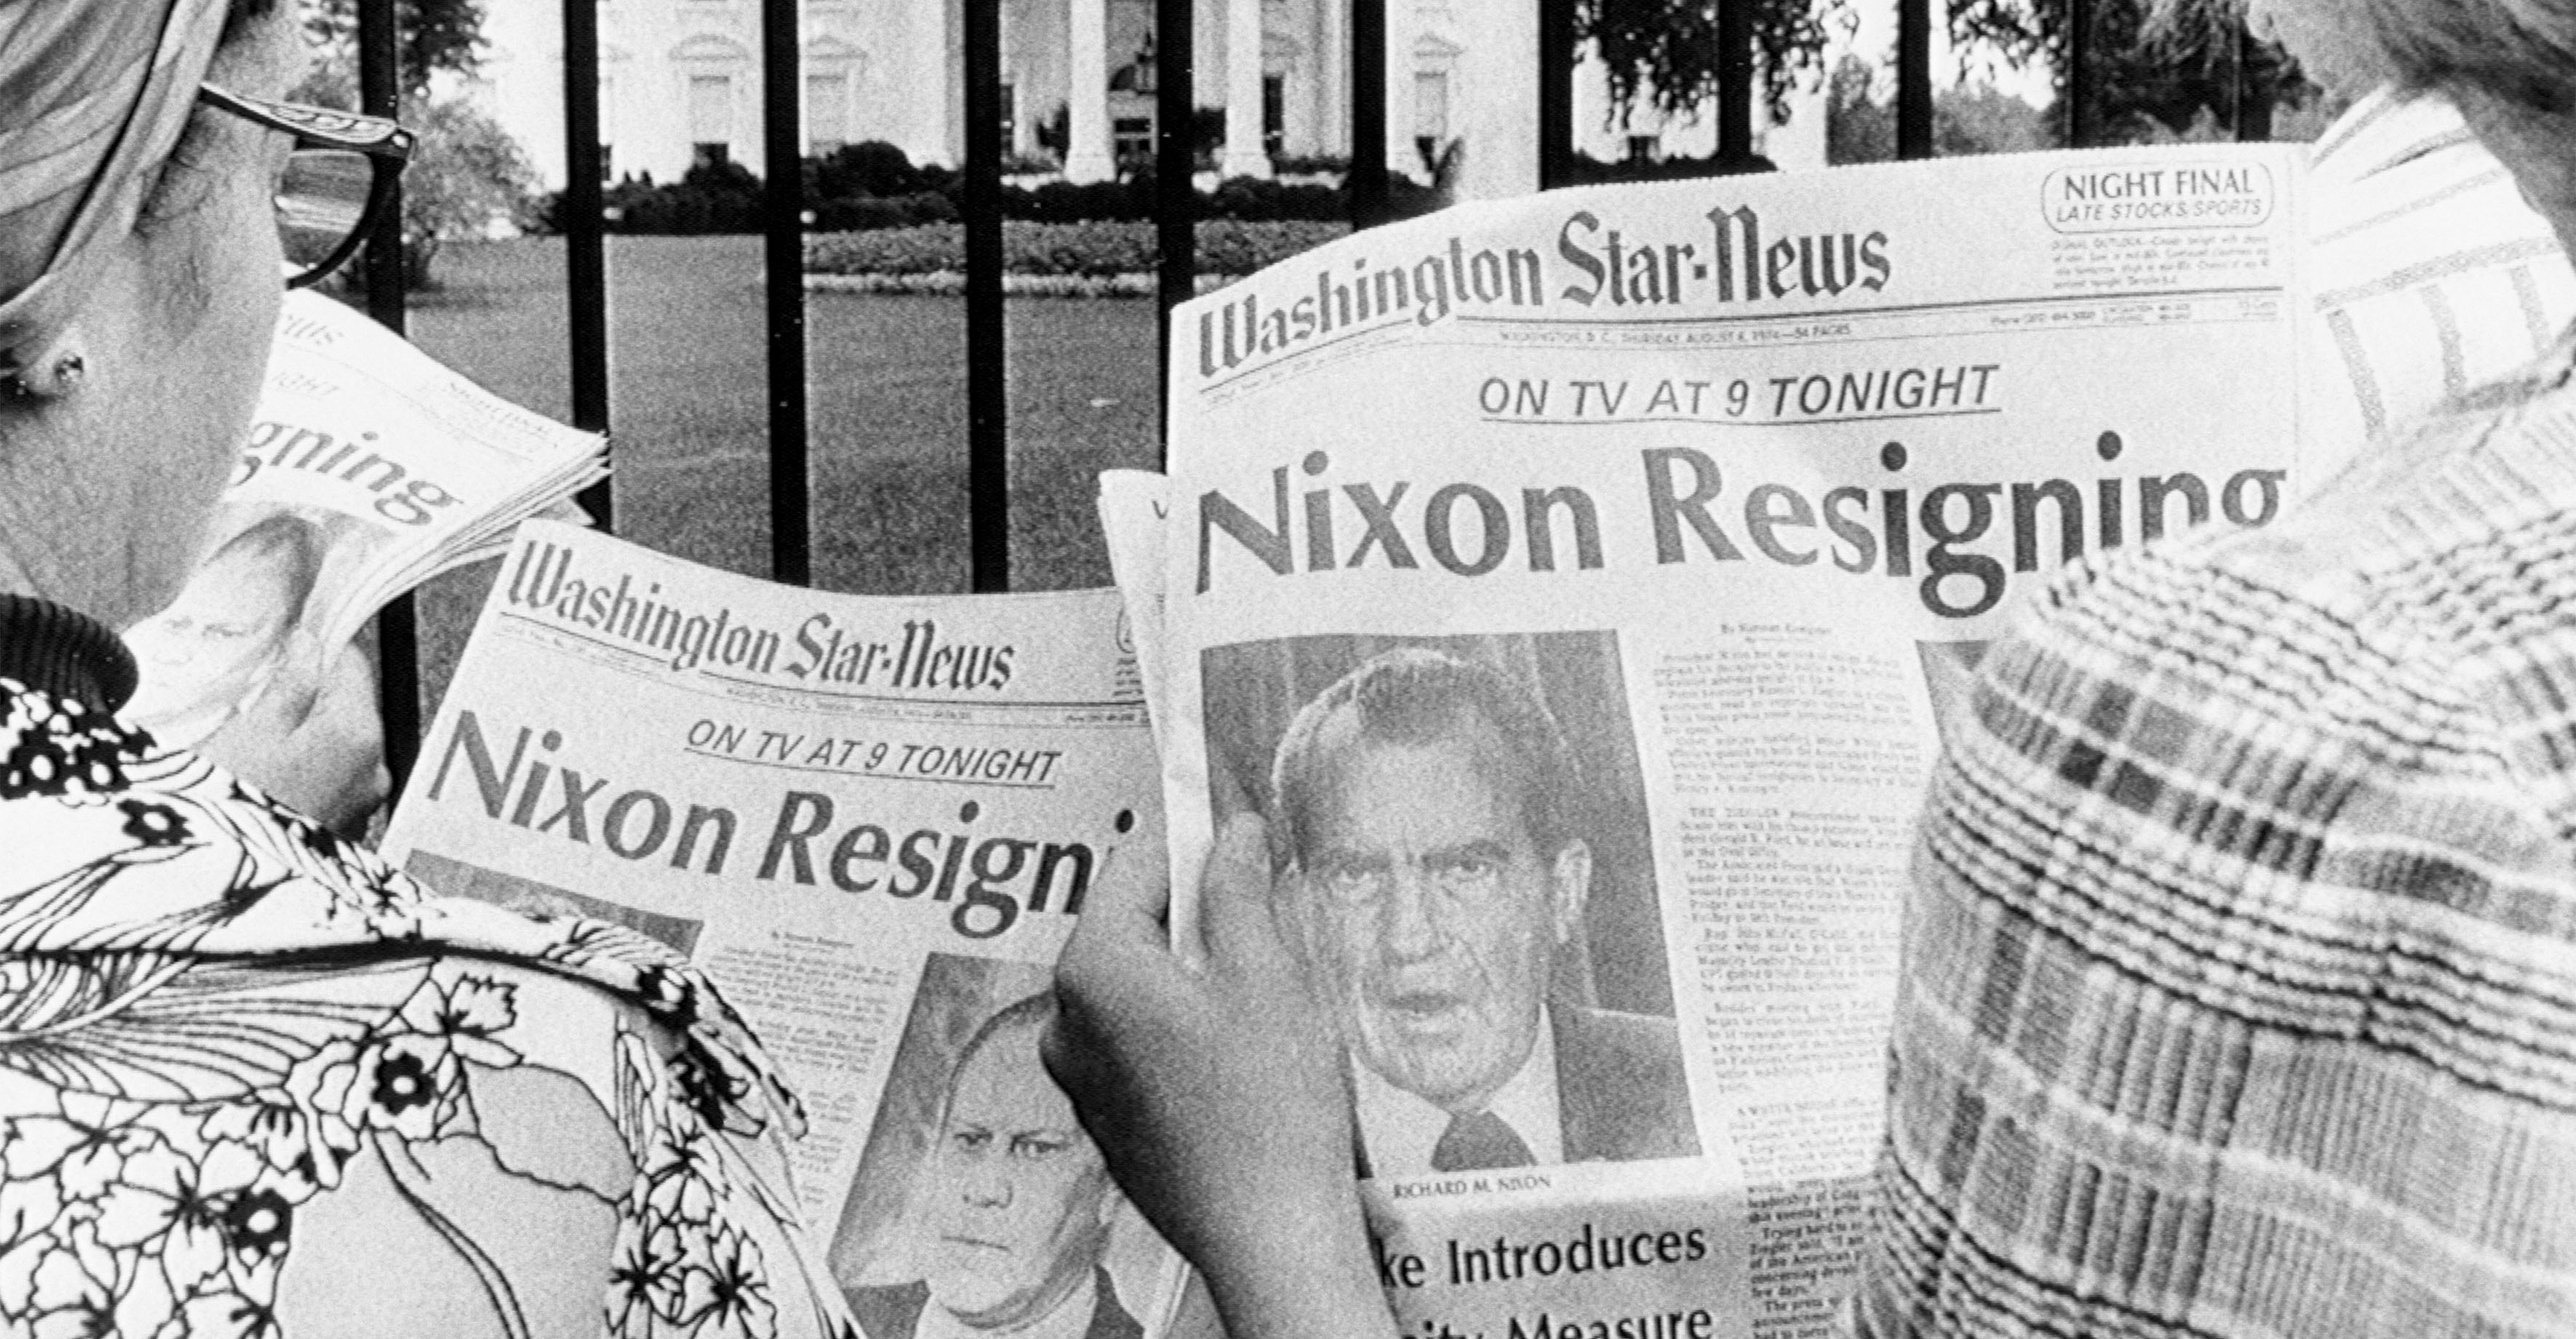 Watergate scandal: A look back at crisis that changed US politics